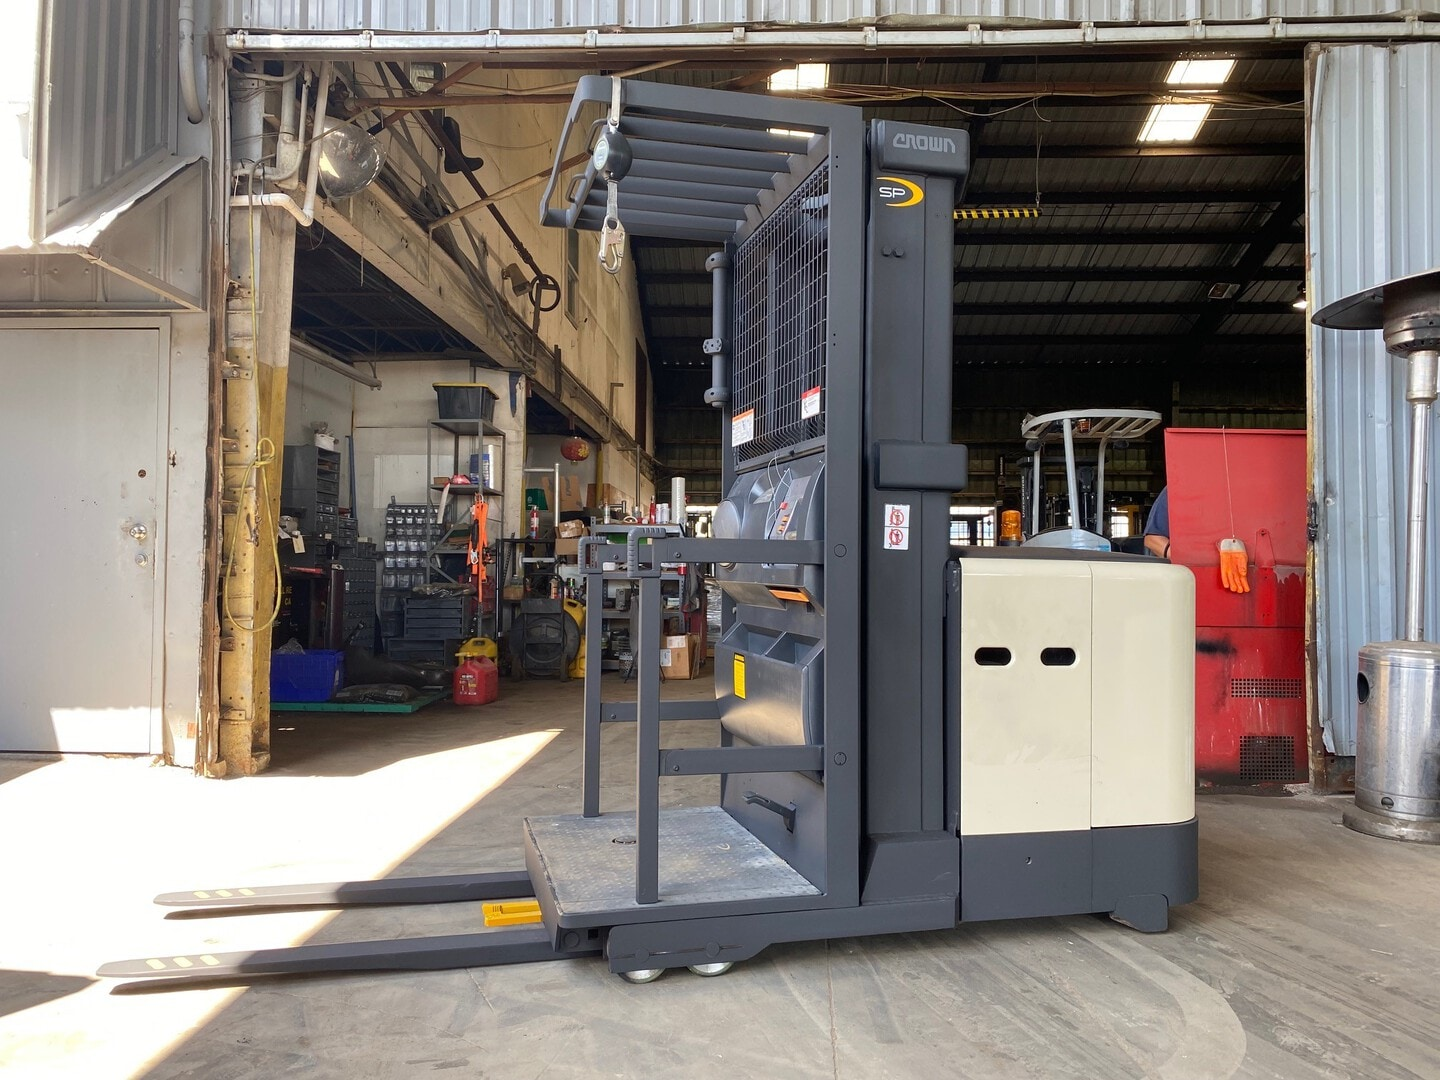 Used, 2011, Crown, SP 3505, Forklifts / Lift Trucks